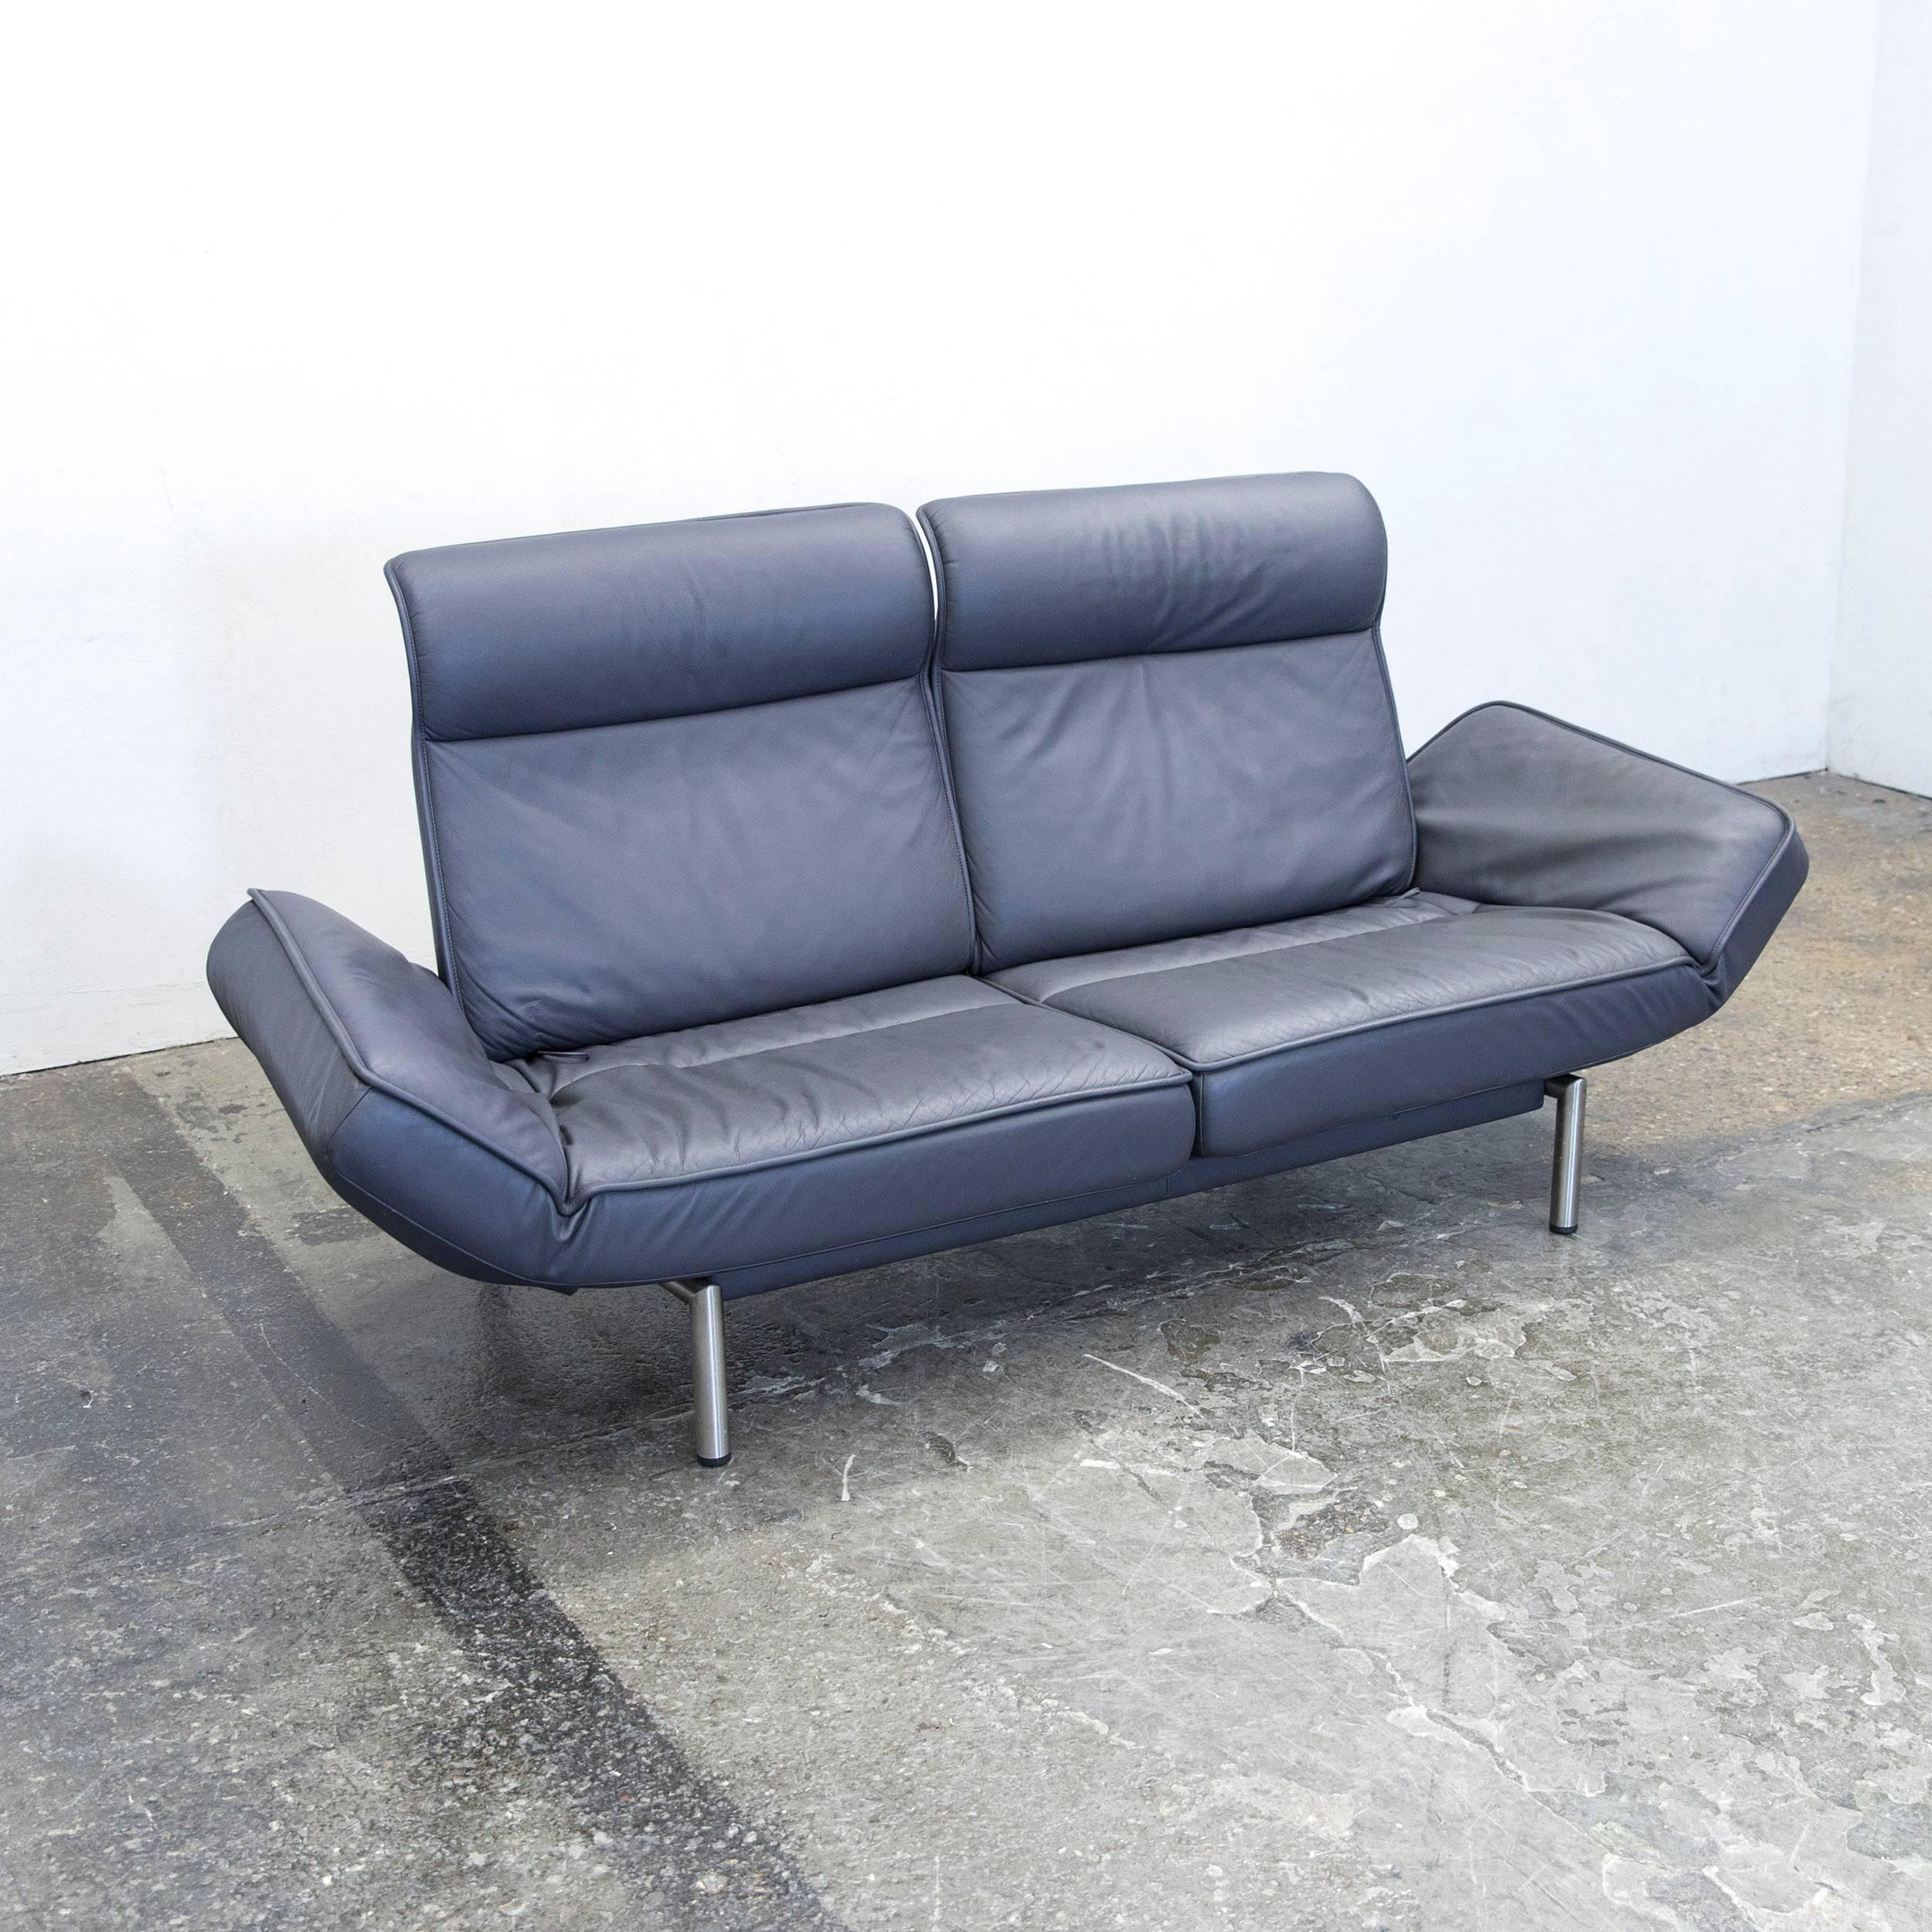 Recamiere Rattan Couch Leder Wei Awesome Cool Best Full Size Of Schwarz Weiss Sofa